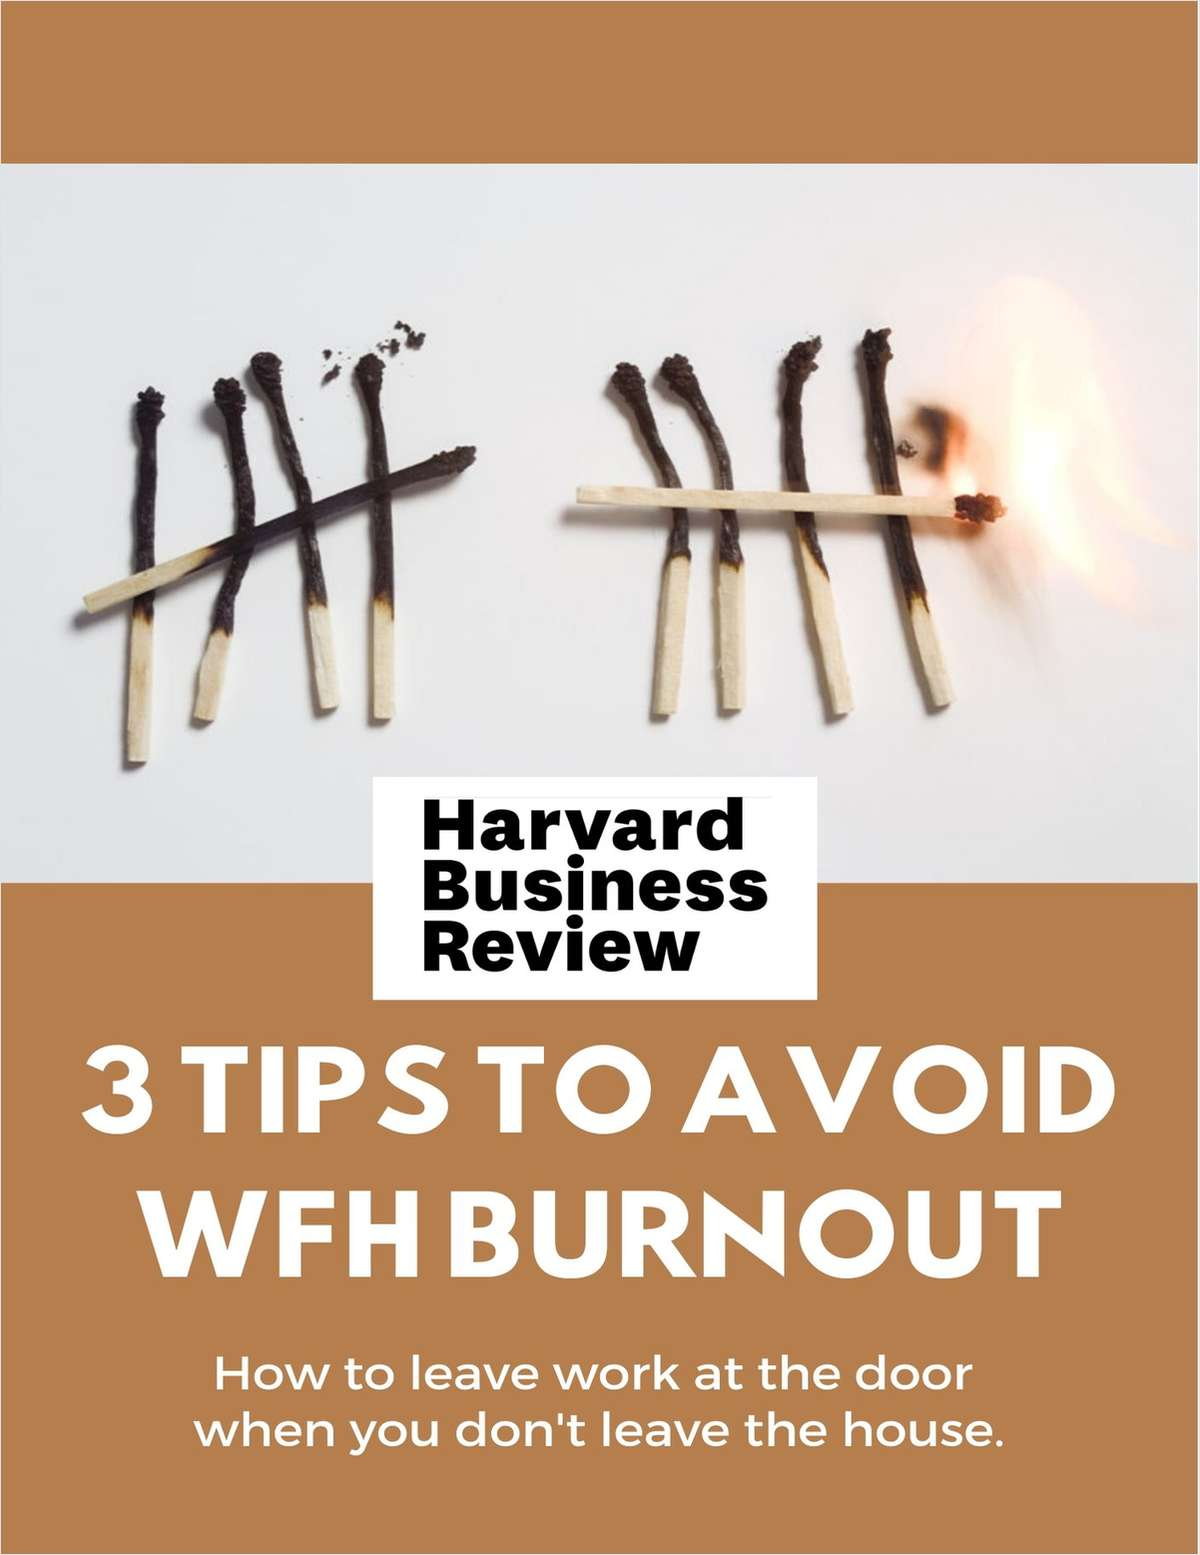 3 Tips to Avoid WFH Burnout